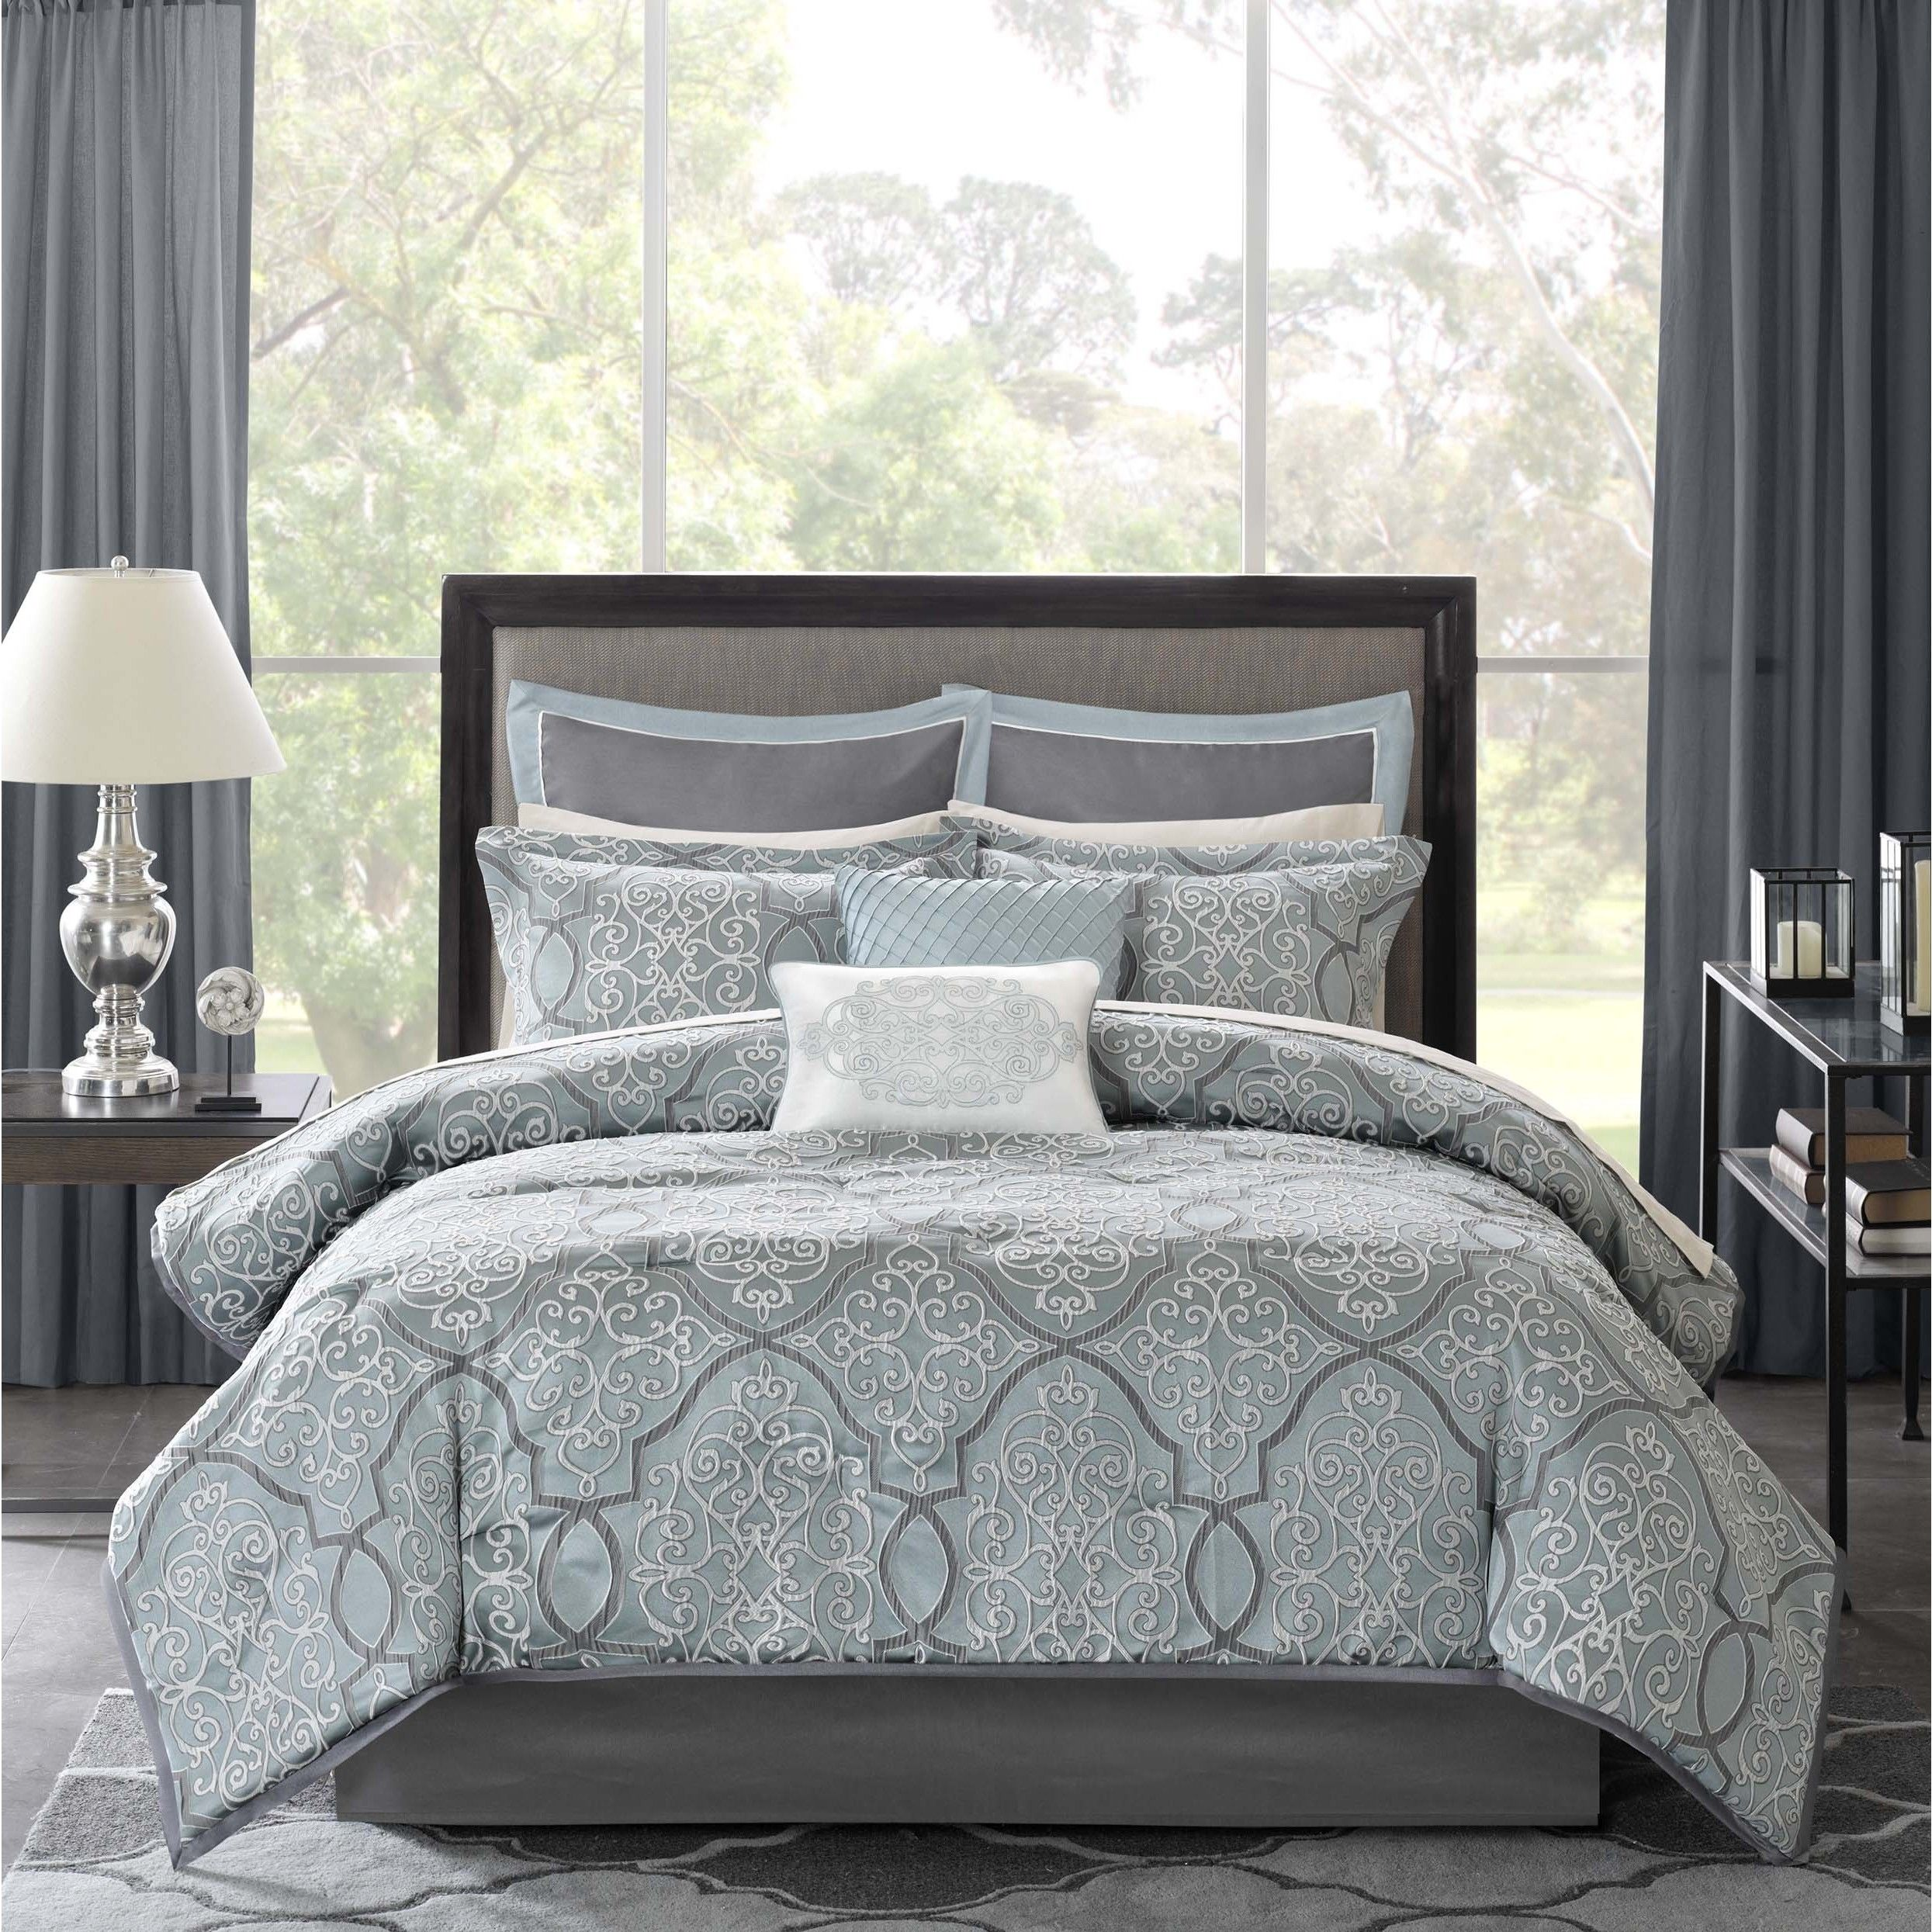 Overstock Bedroom Furniture Sets Madison Park Anouk Jacquard 12 Piece Complete Bed Set By Madison